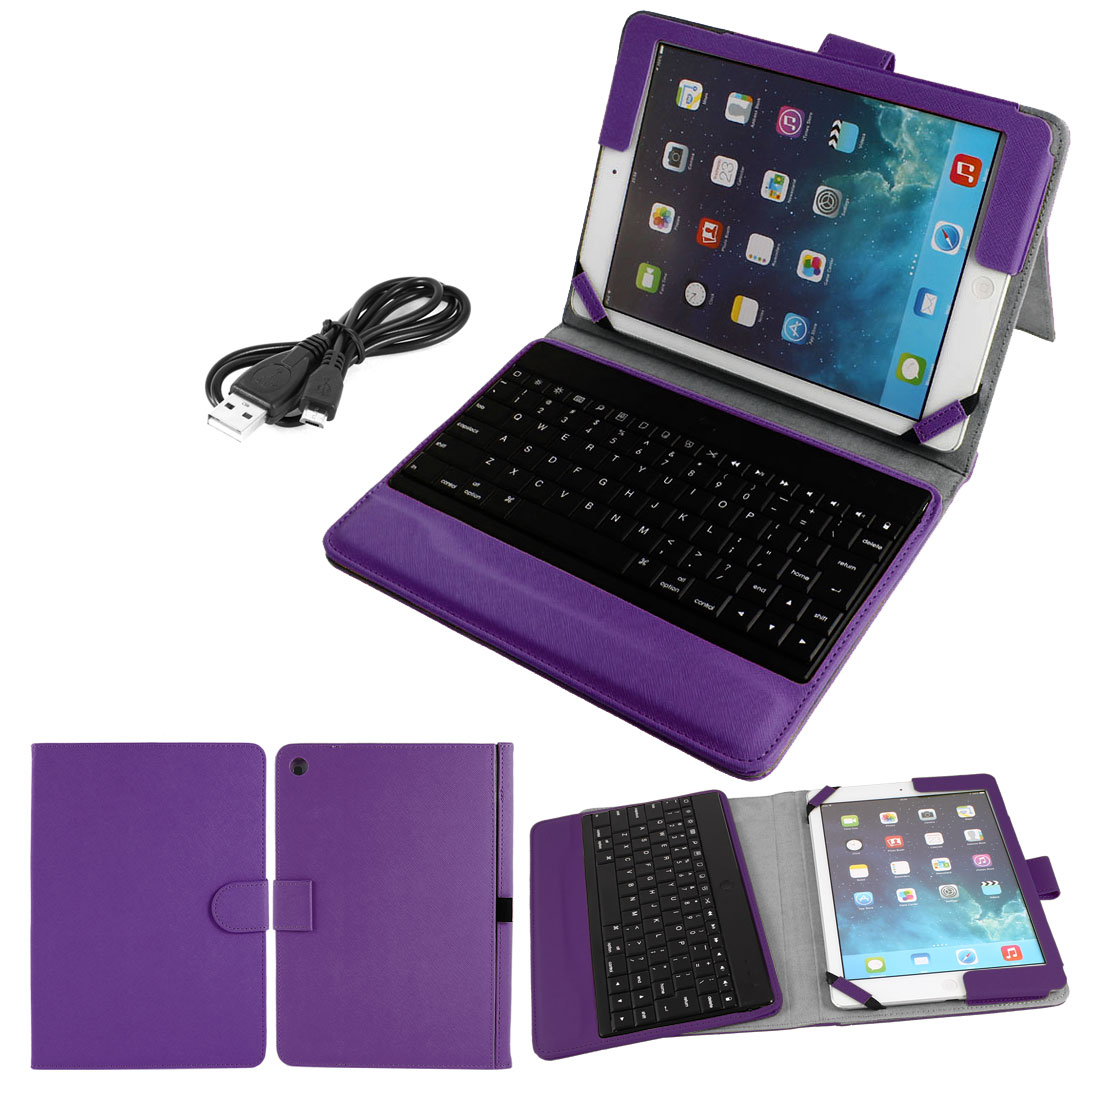 Unique Bargains bluetooth Keyboard PU Leather Protective Stand Case Cover Purple for iPad 2 3 4